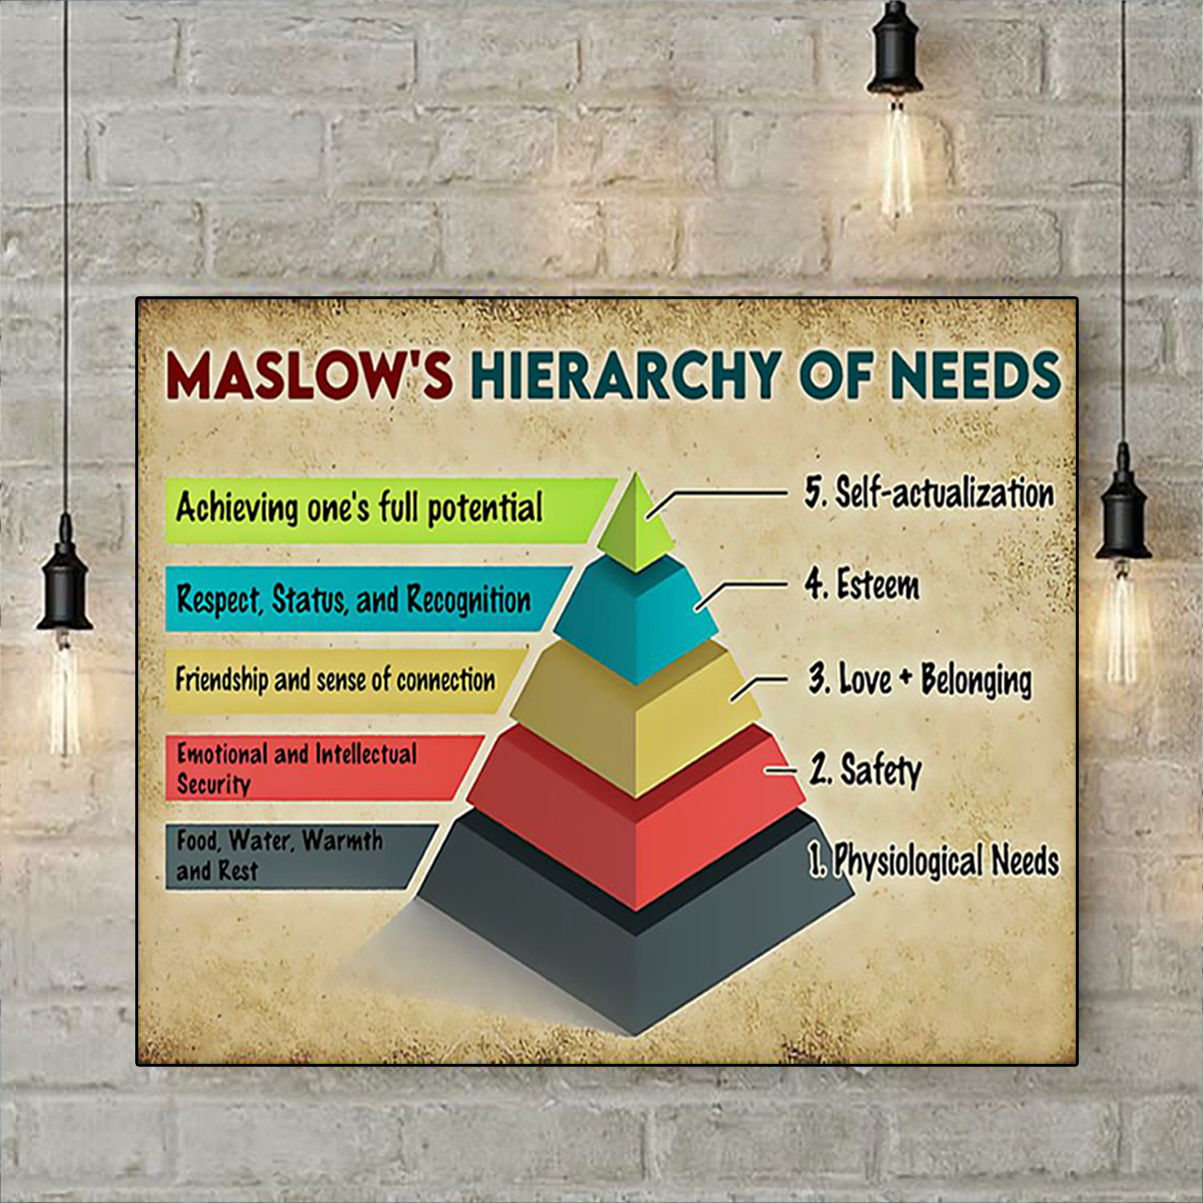 Social worker maslow's hierarchy of needs poster A3